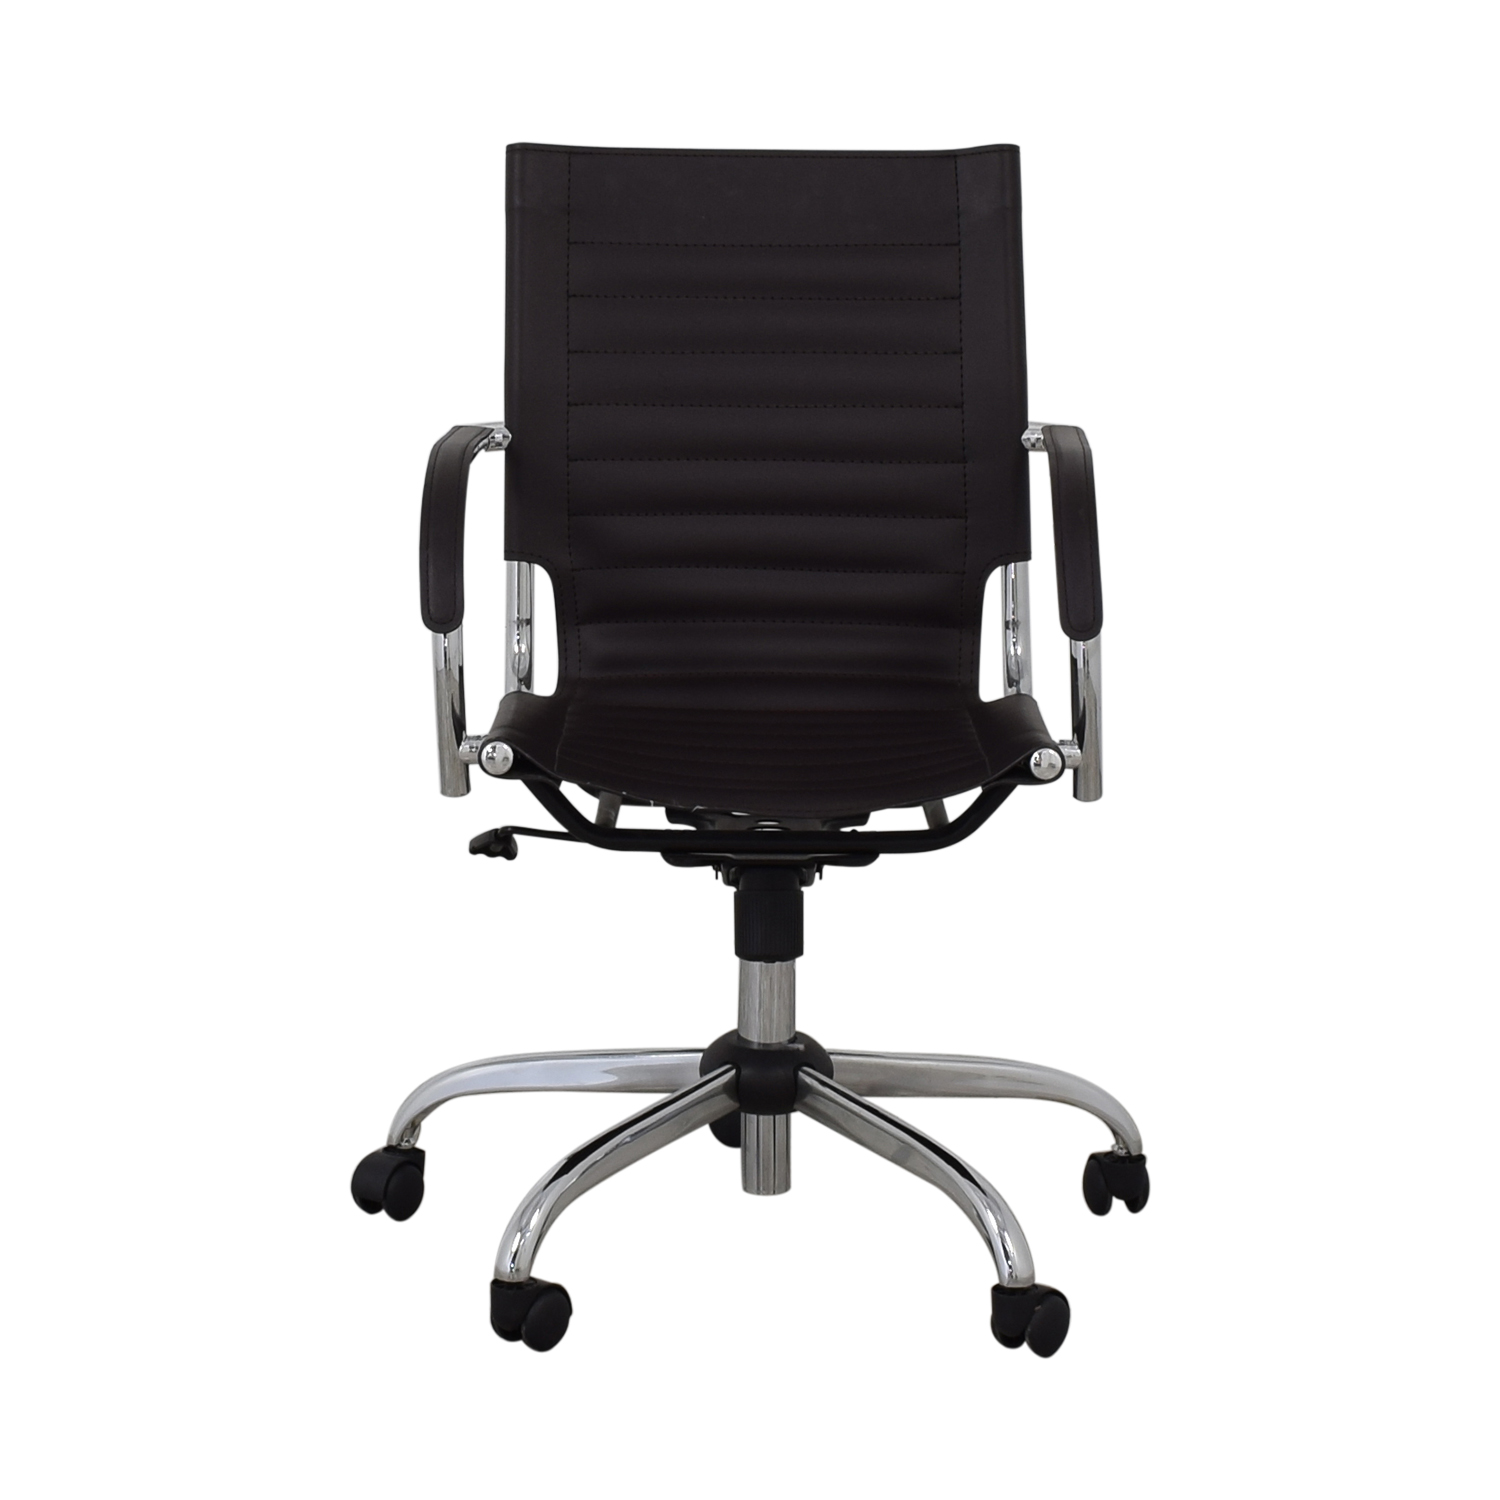 Wrought Studio Wrought Studio Figueroa Conference Chair Brown